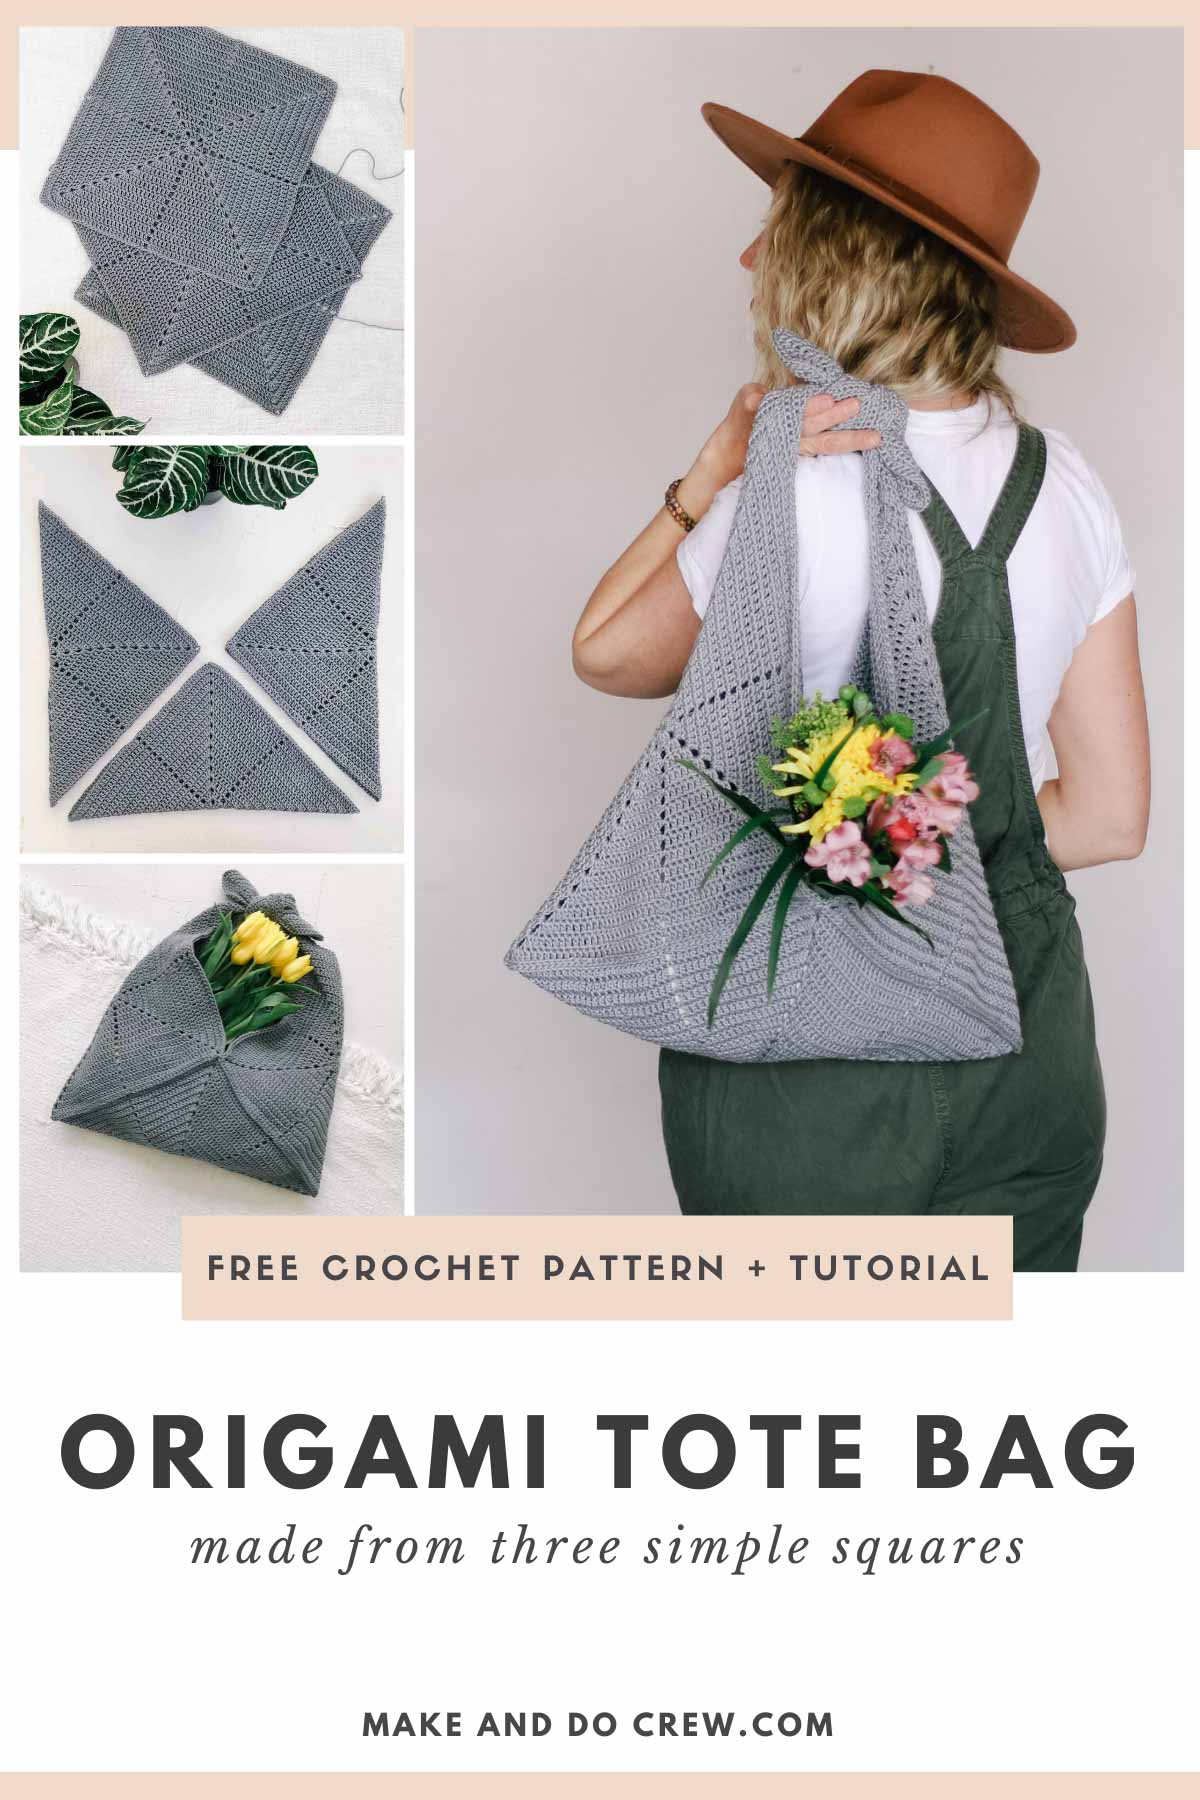 A grid of photos showing how a crochet tote bag is made from three basic squares.